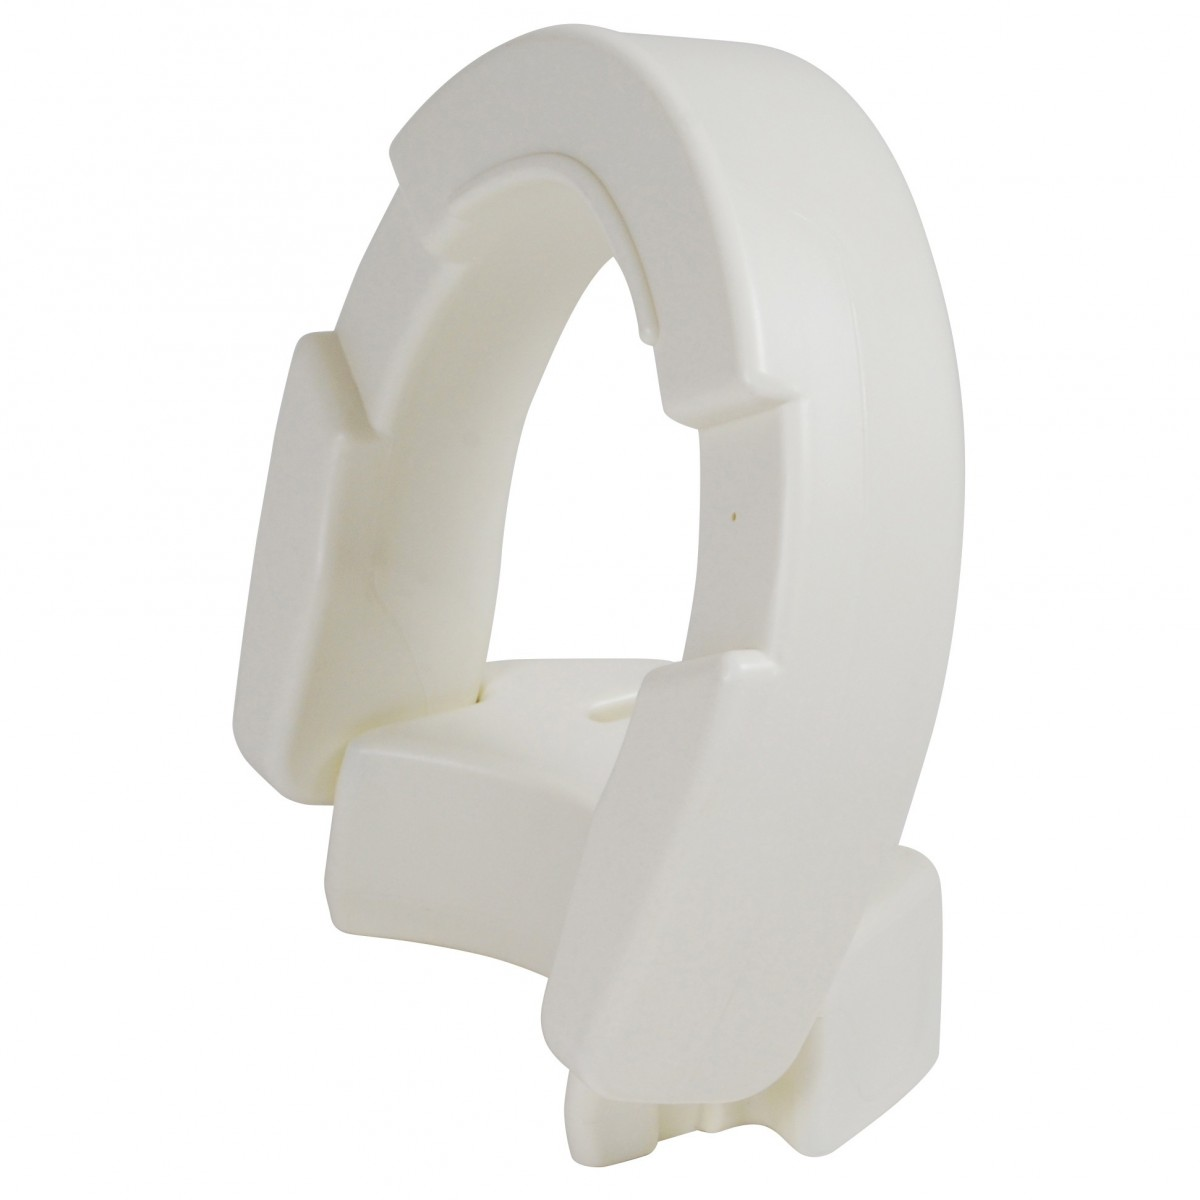 Hinged Toilet Seat Riser By Drive Medical Rtl12607